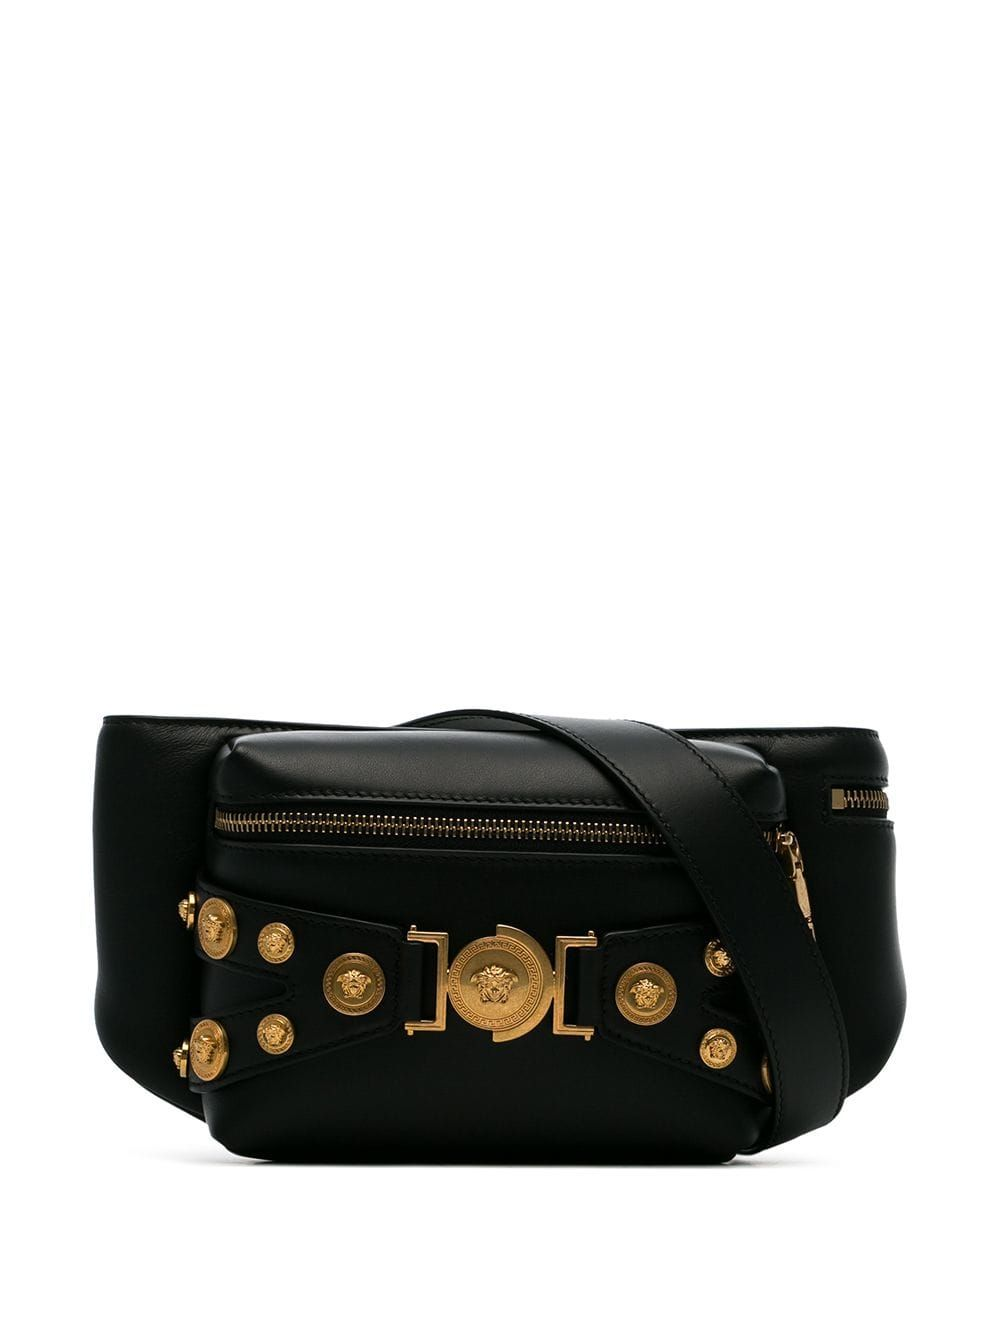 a8025f27d404 VERSACE VERSACE TRIBUTE CROSSBODY BELT BAG - BLACK.  versace  bags  leather   belt bags